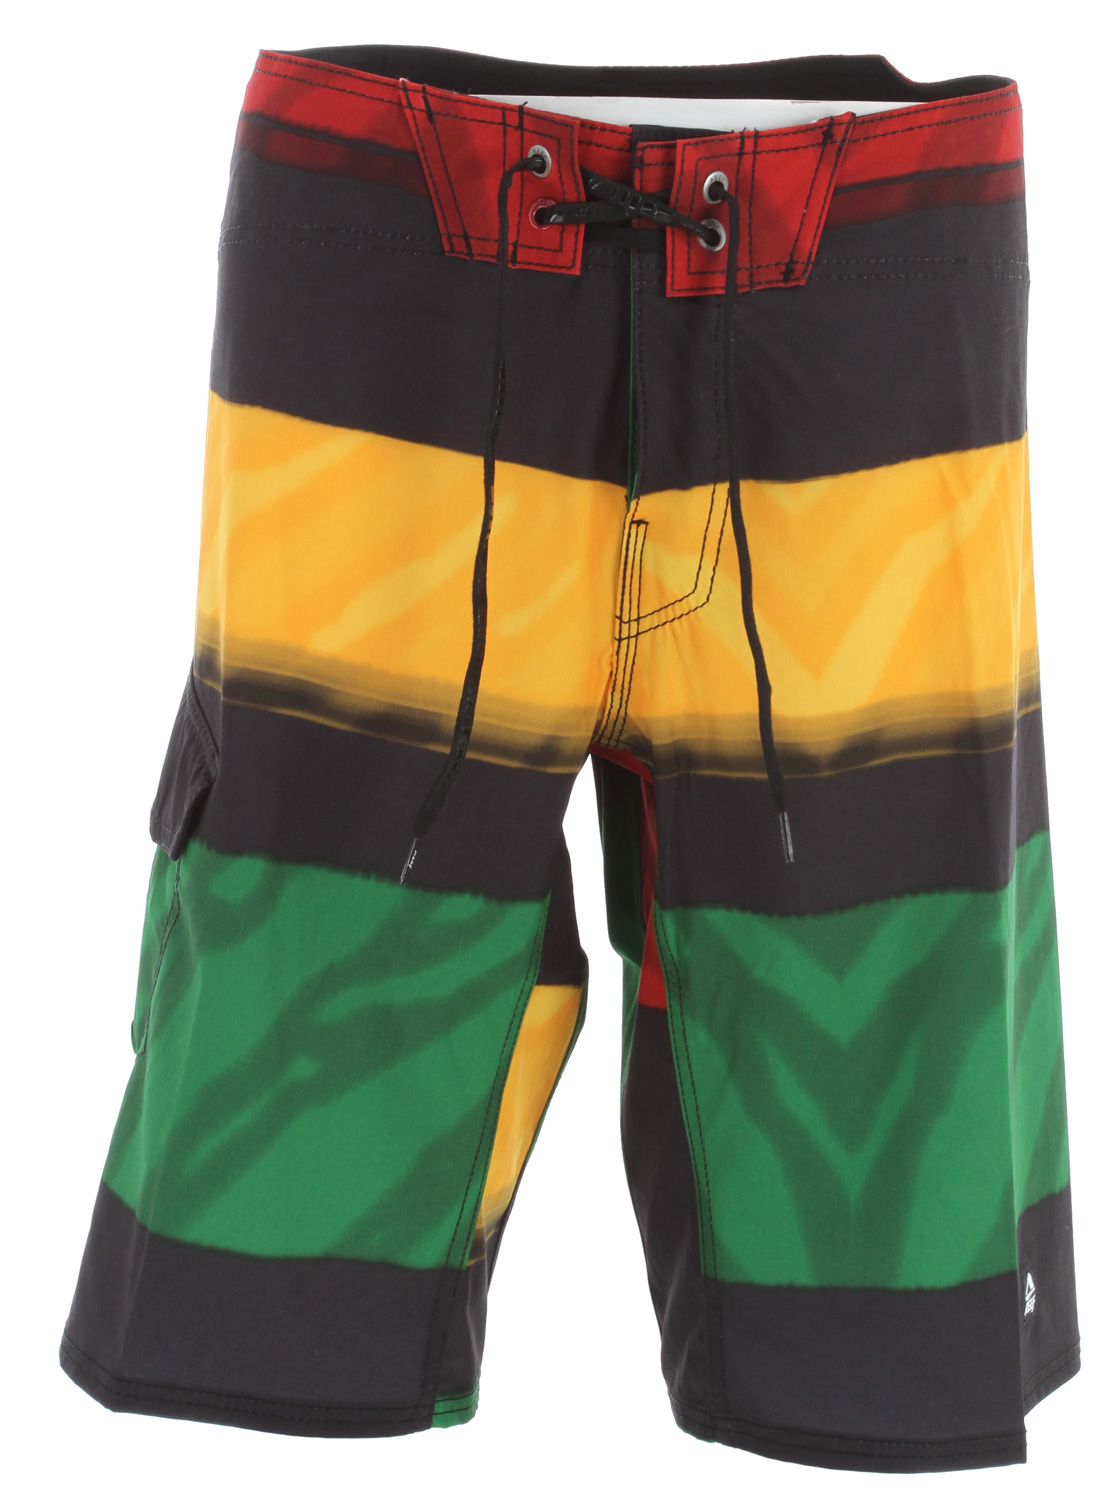 "Surf Key Features of the Reef Stripe Conflict Boardshorts: 4 way elite stretch fabric 85/15 polyester / spandex 22"" outseam - $47.95"